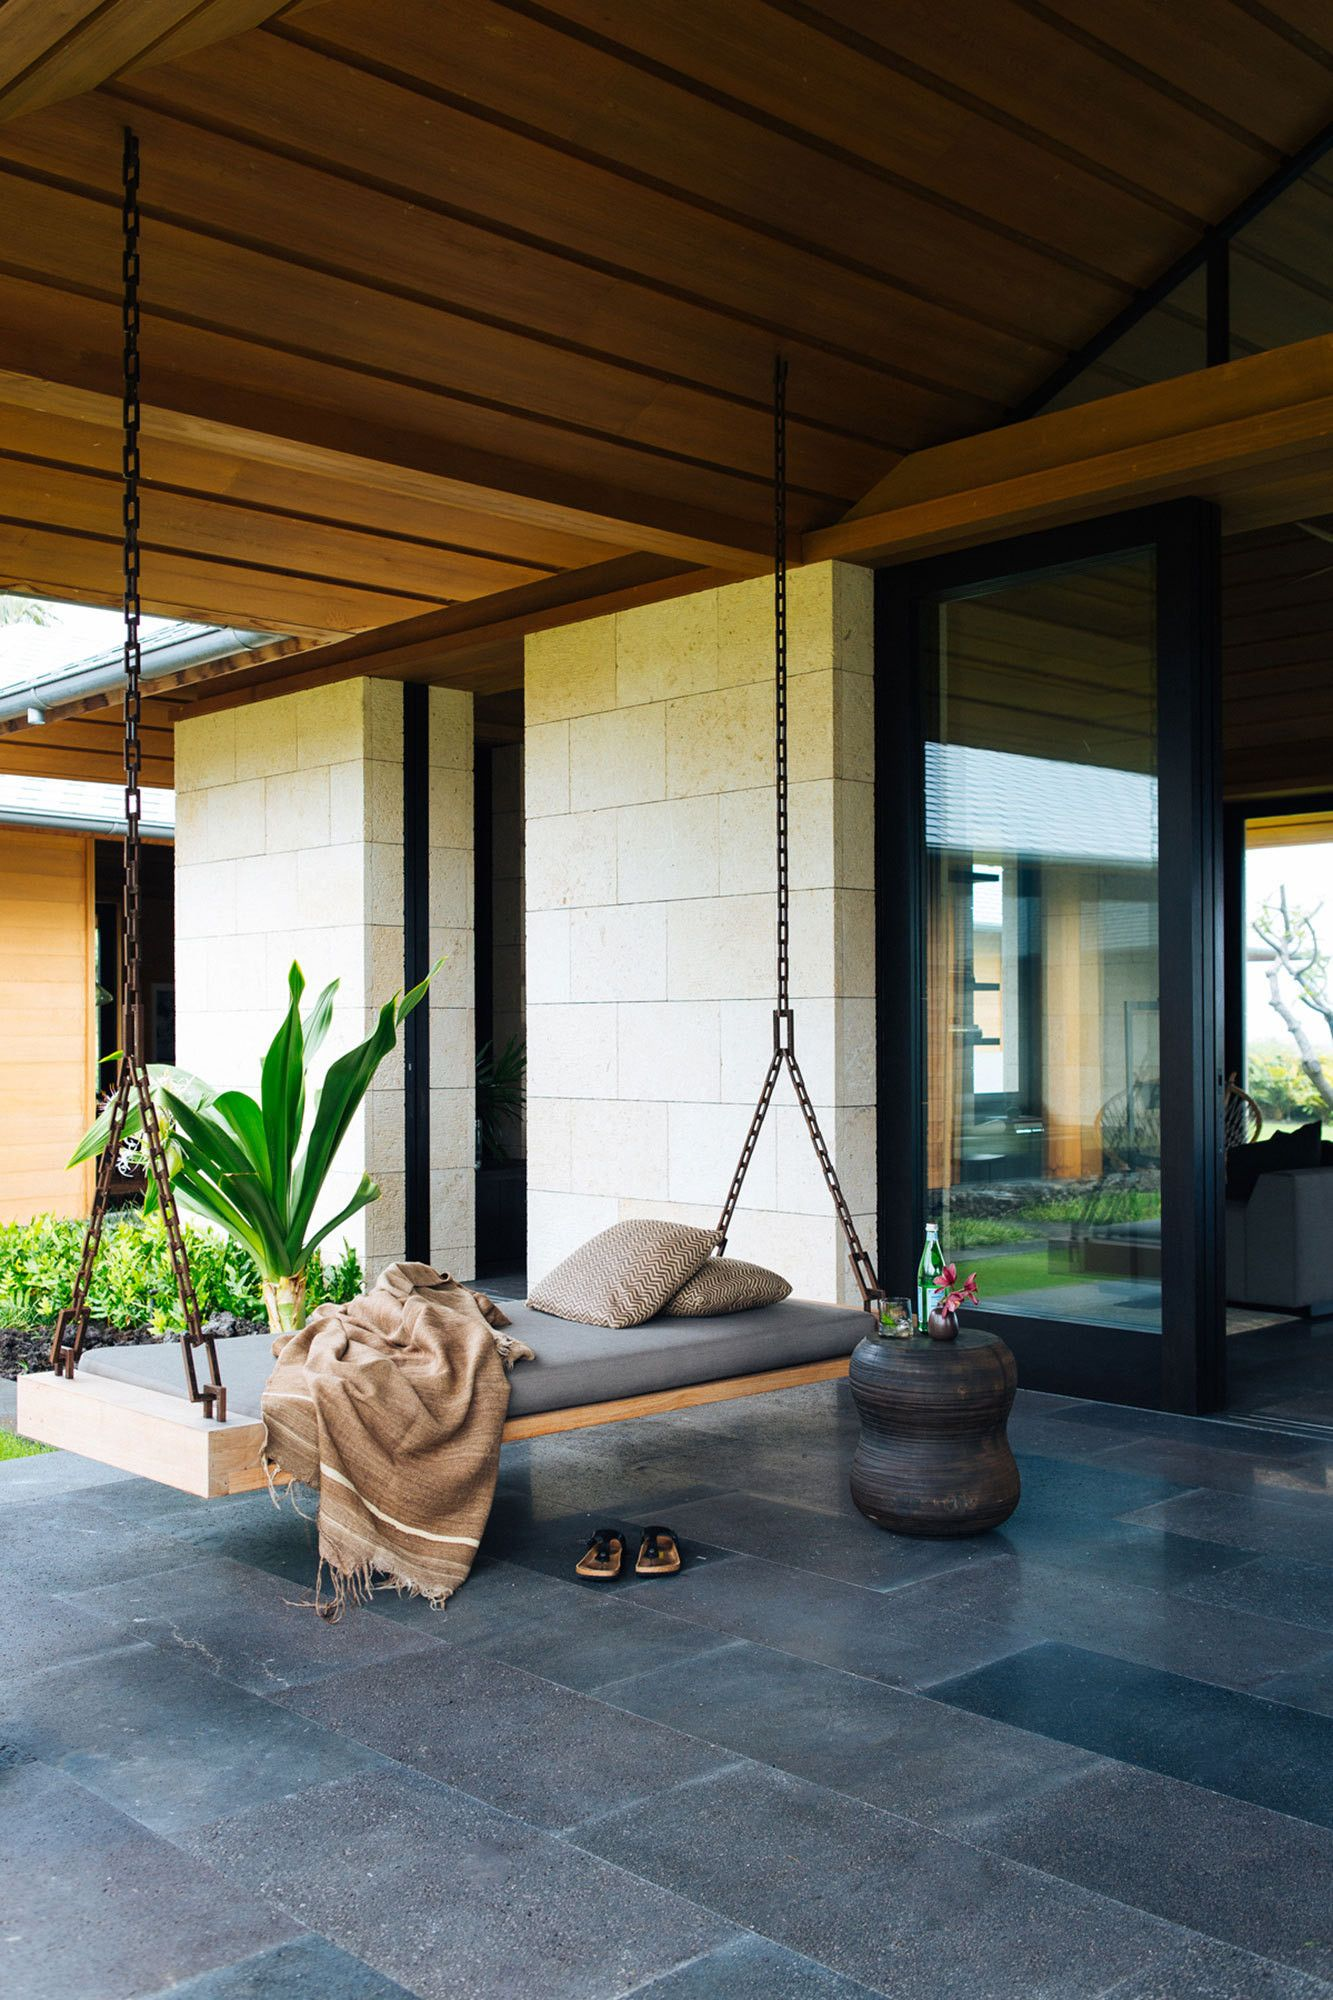 Modern Home in Hawaii httpwwwlonnycomHome TourarticlesZf12I7KILWParadiseFoundMinimalModernHome